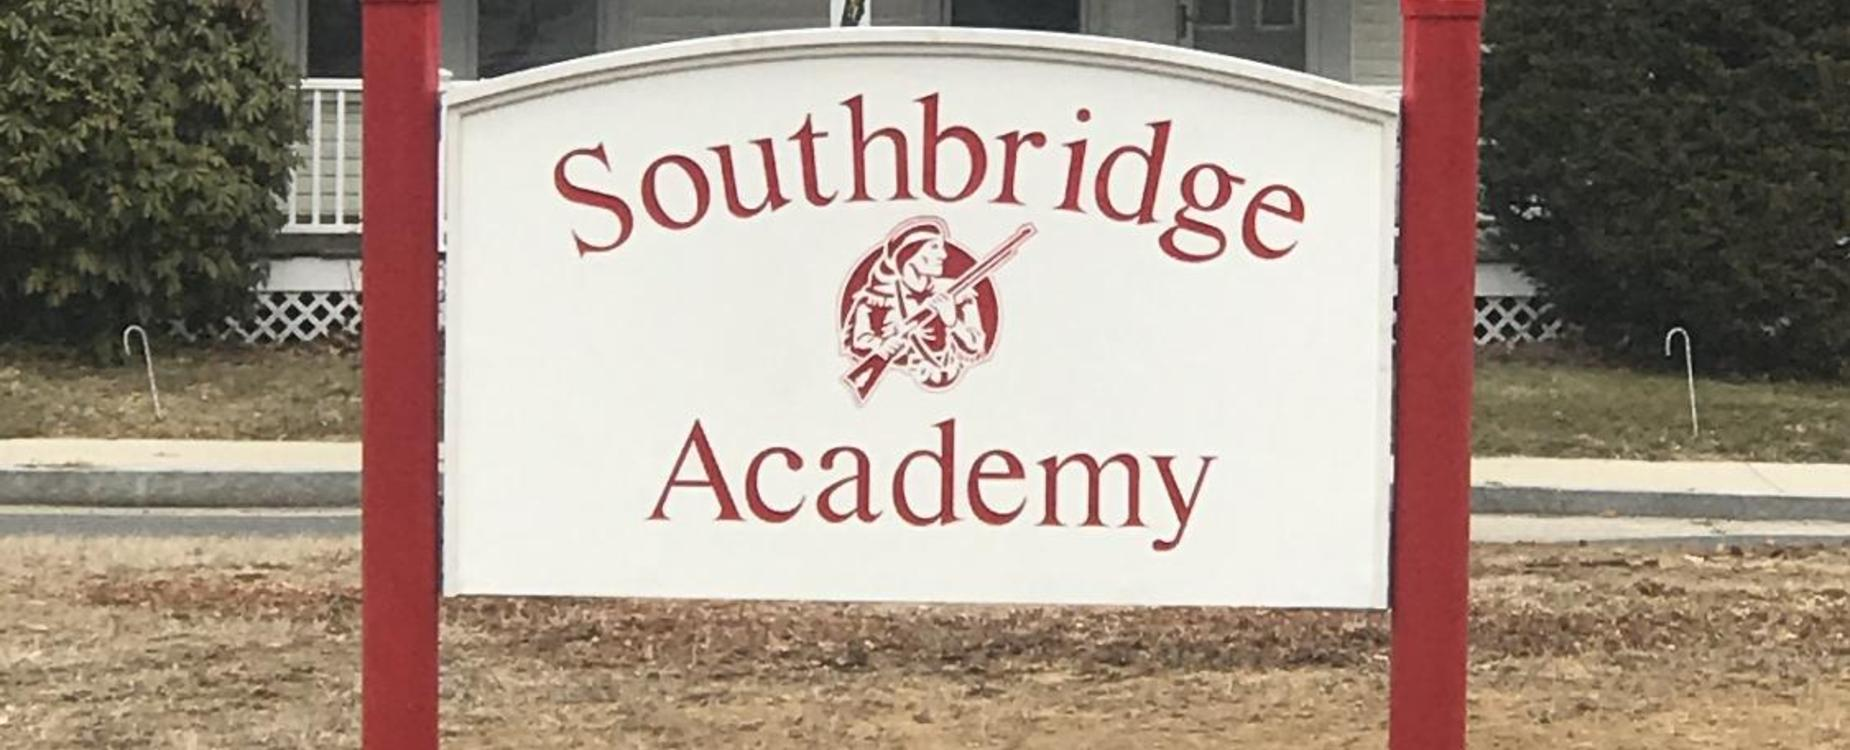 The Southbridge Academy sign outside the building